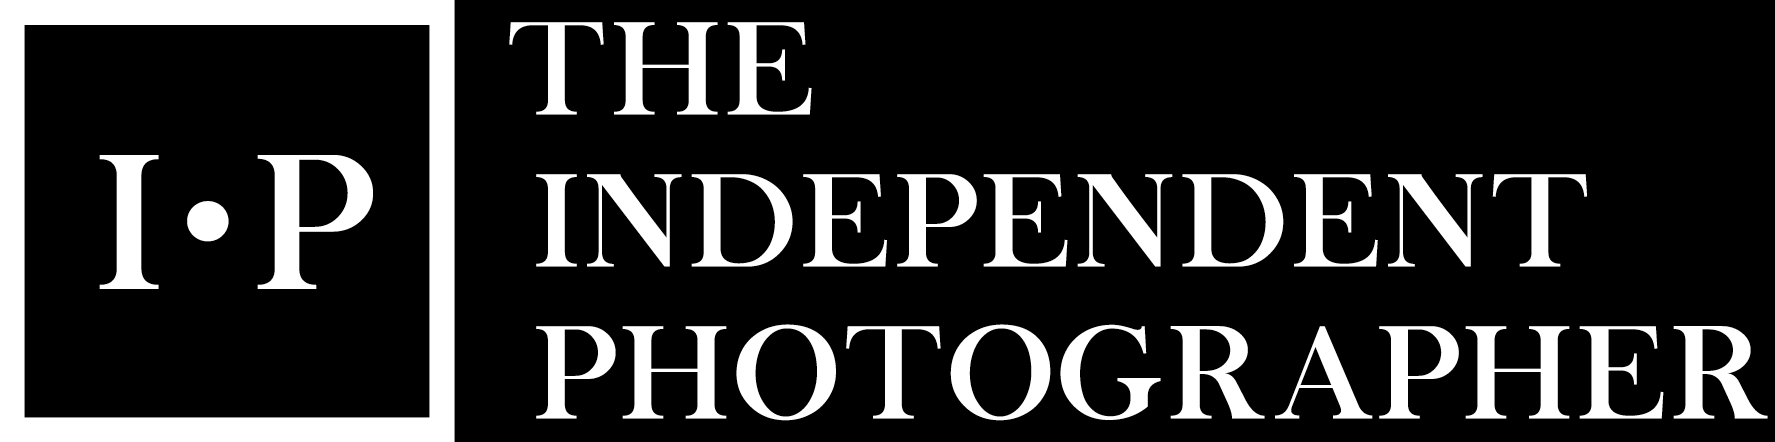 The Independent Photographer's 2020 Black & White Photography Award